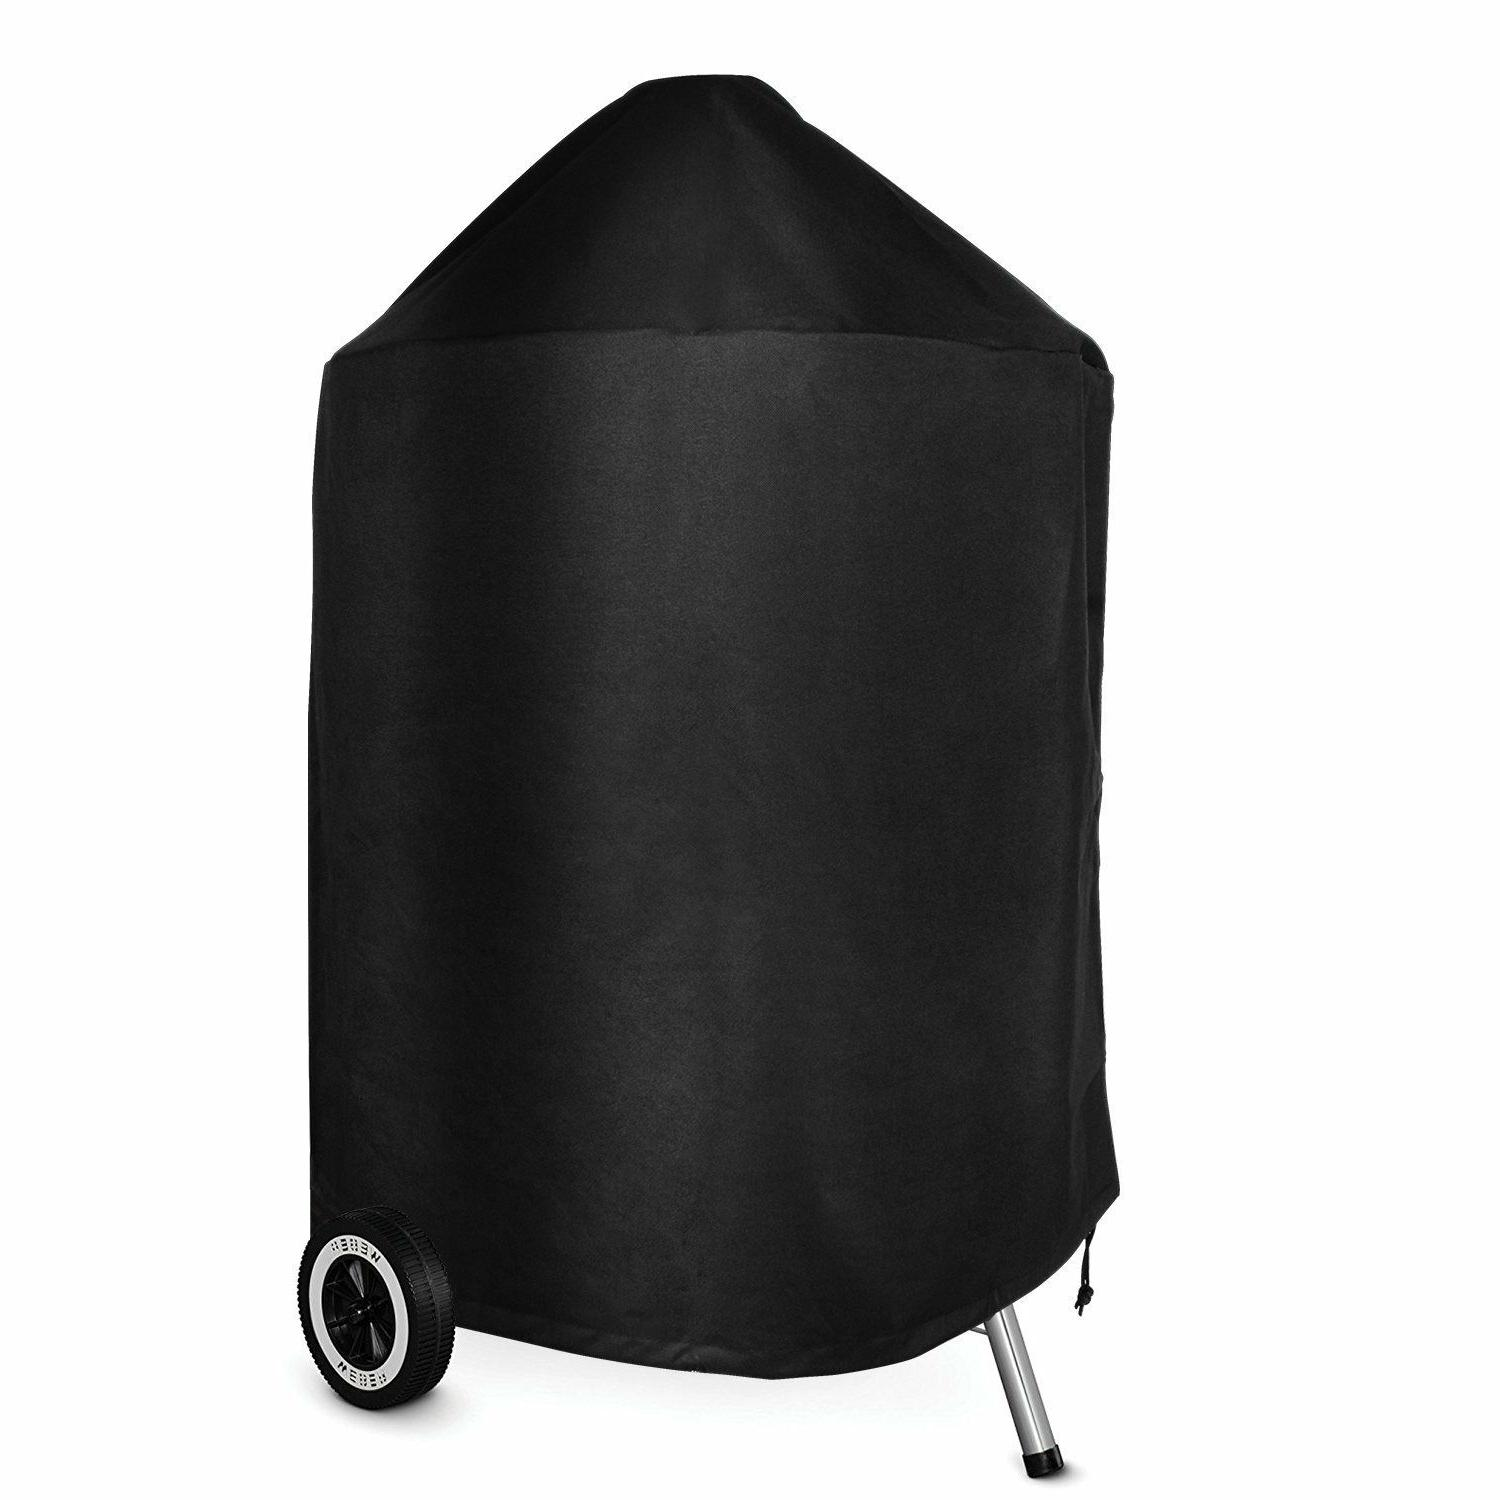 grill cover fits for 22 inch charcoal